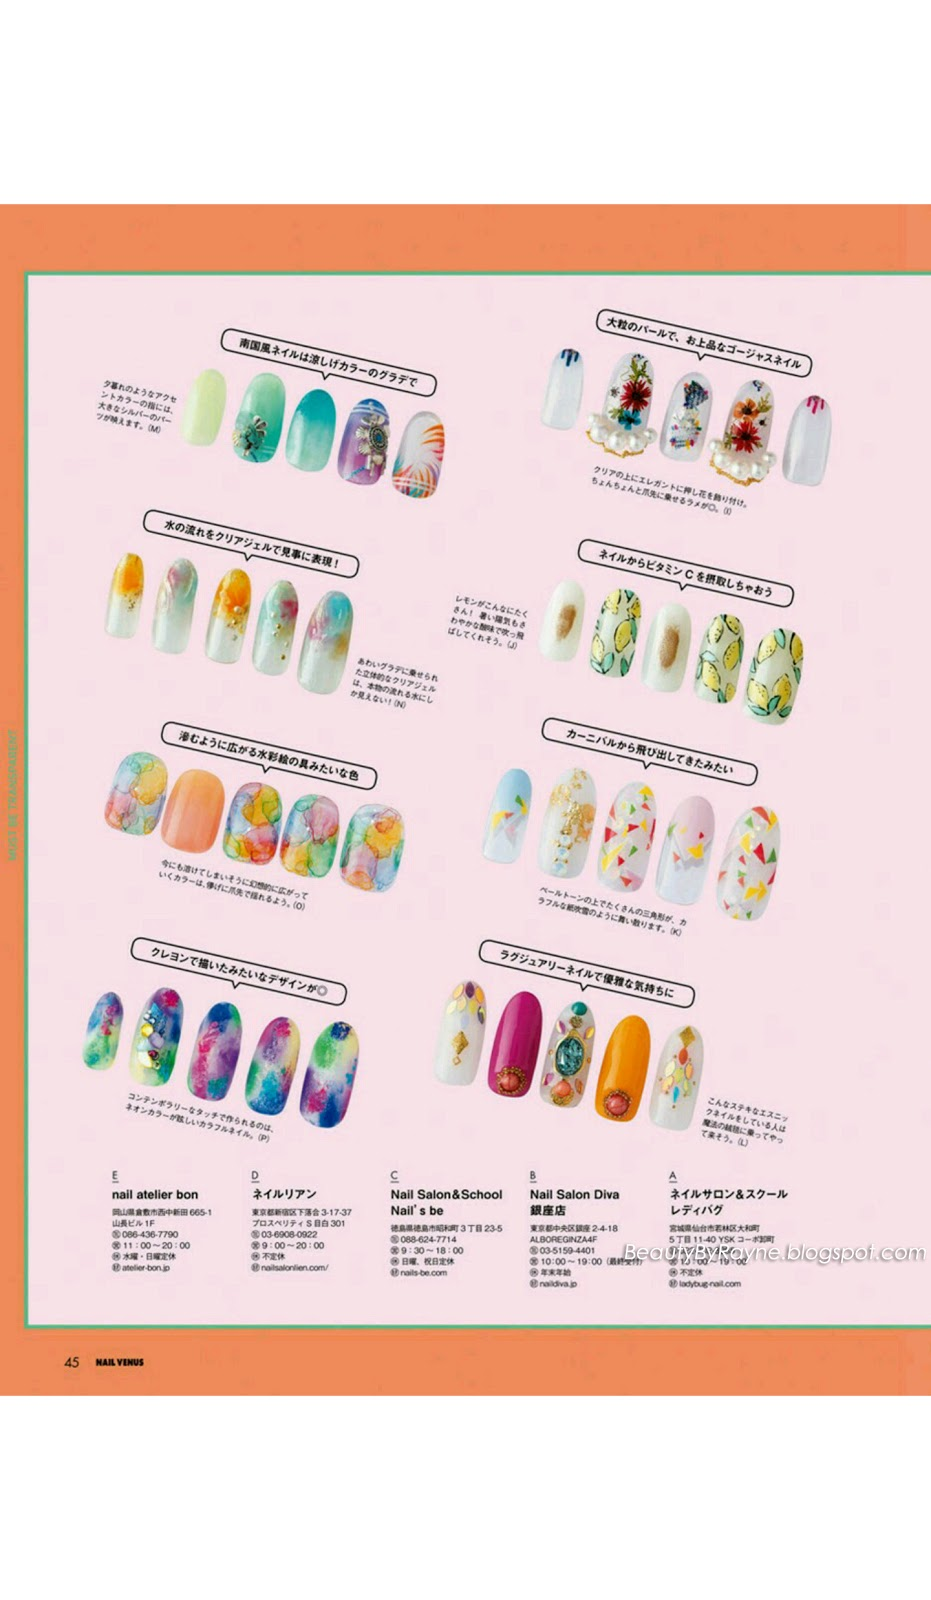 Nail Venus Summer 2018 Issue [Japanese Magazine Scans] | Beauty by Rayne